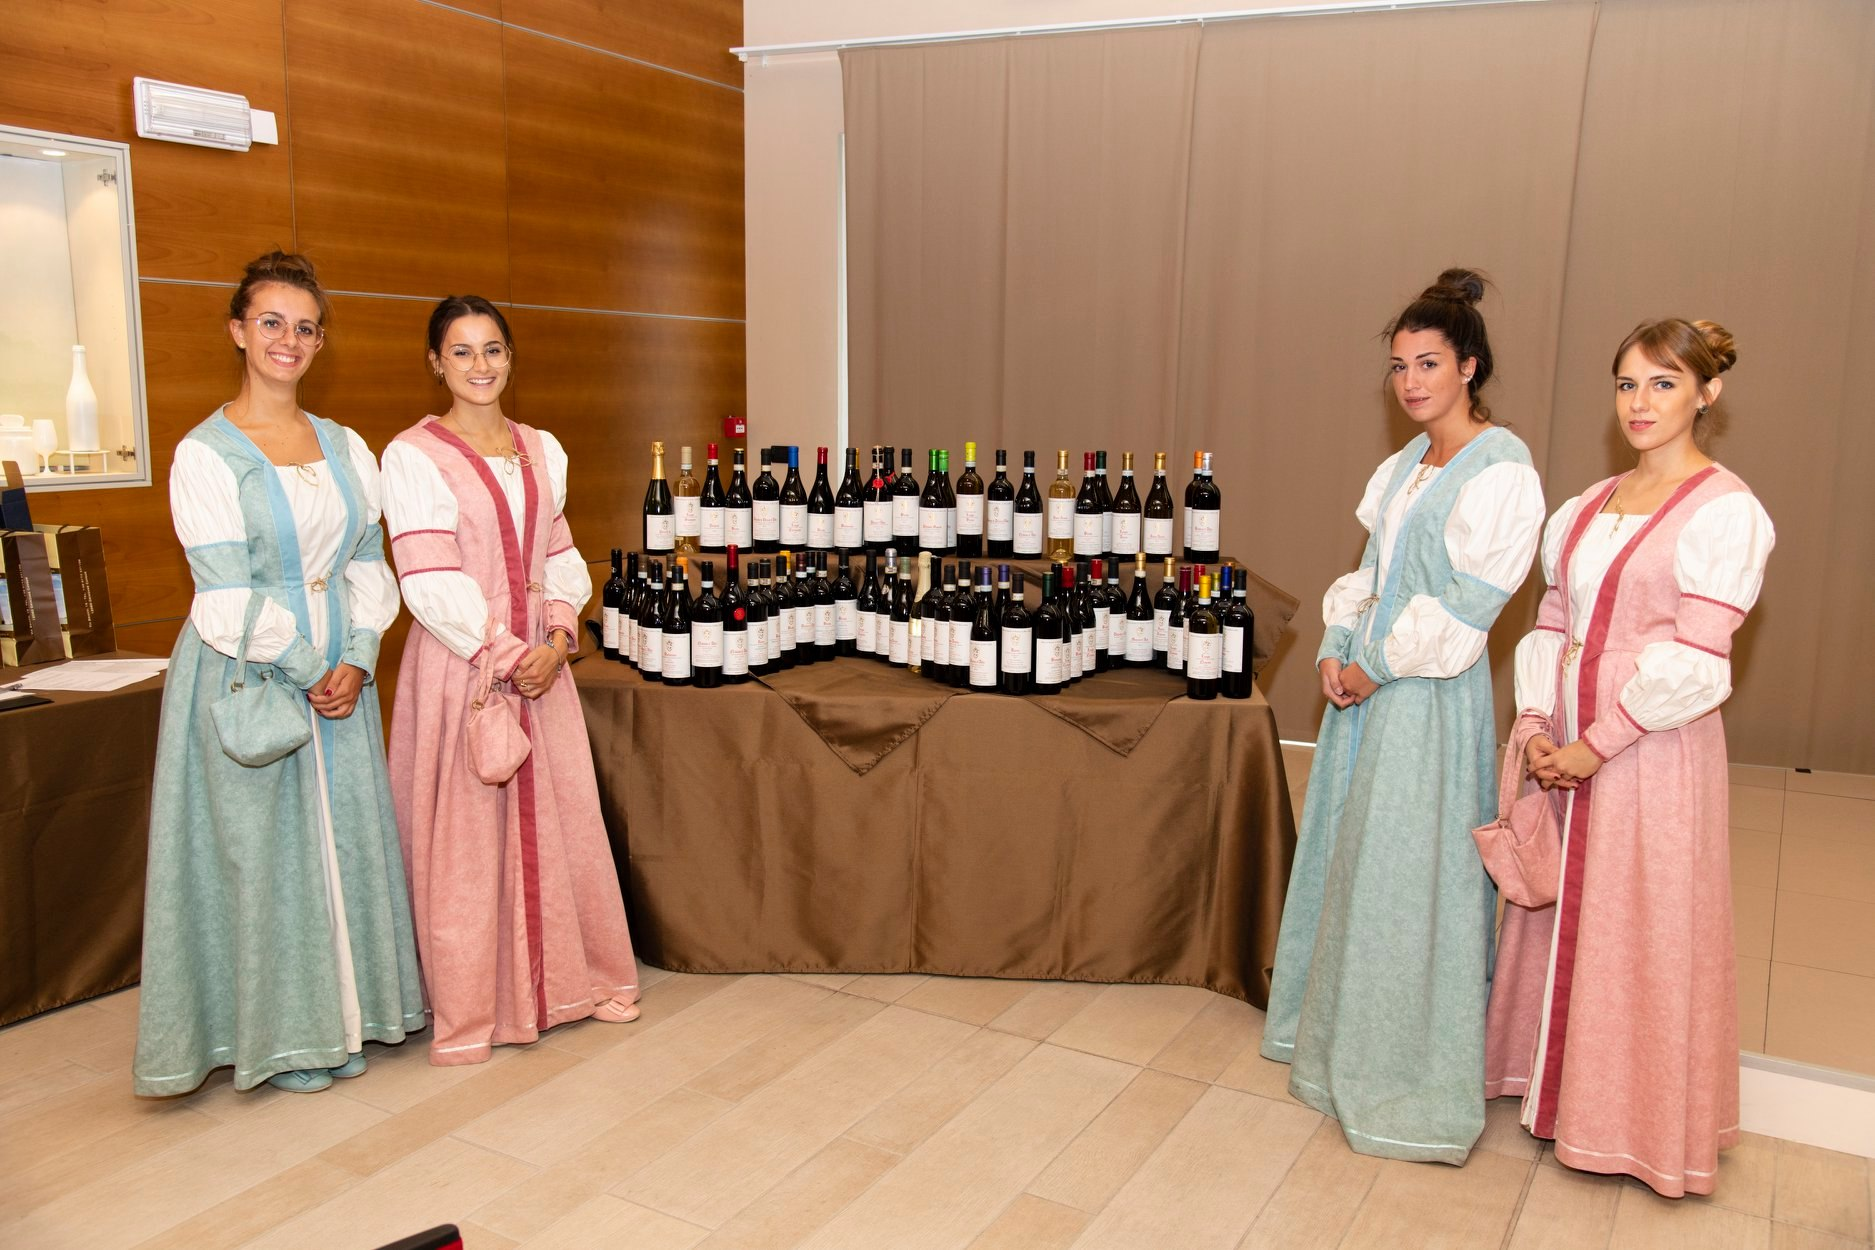 301st-chapter-of-the-selection-of-the-great-wines-of-alba